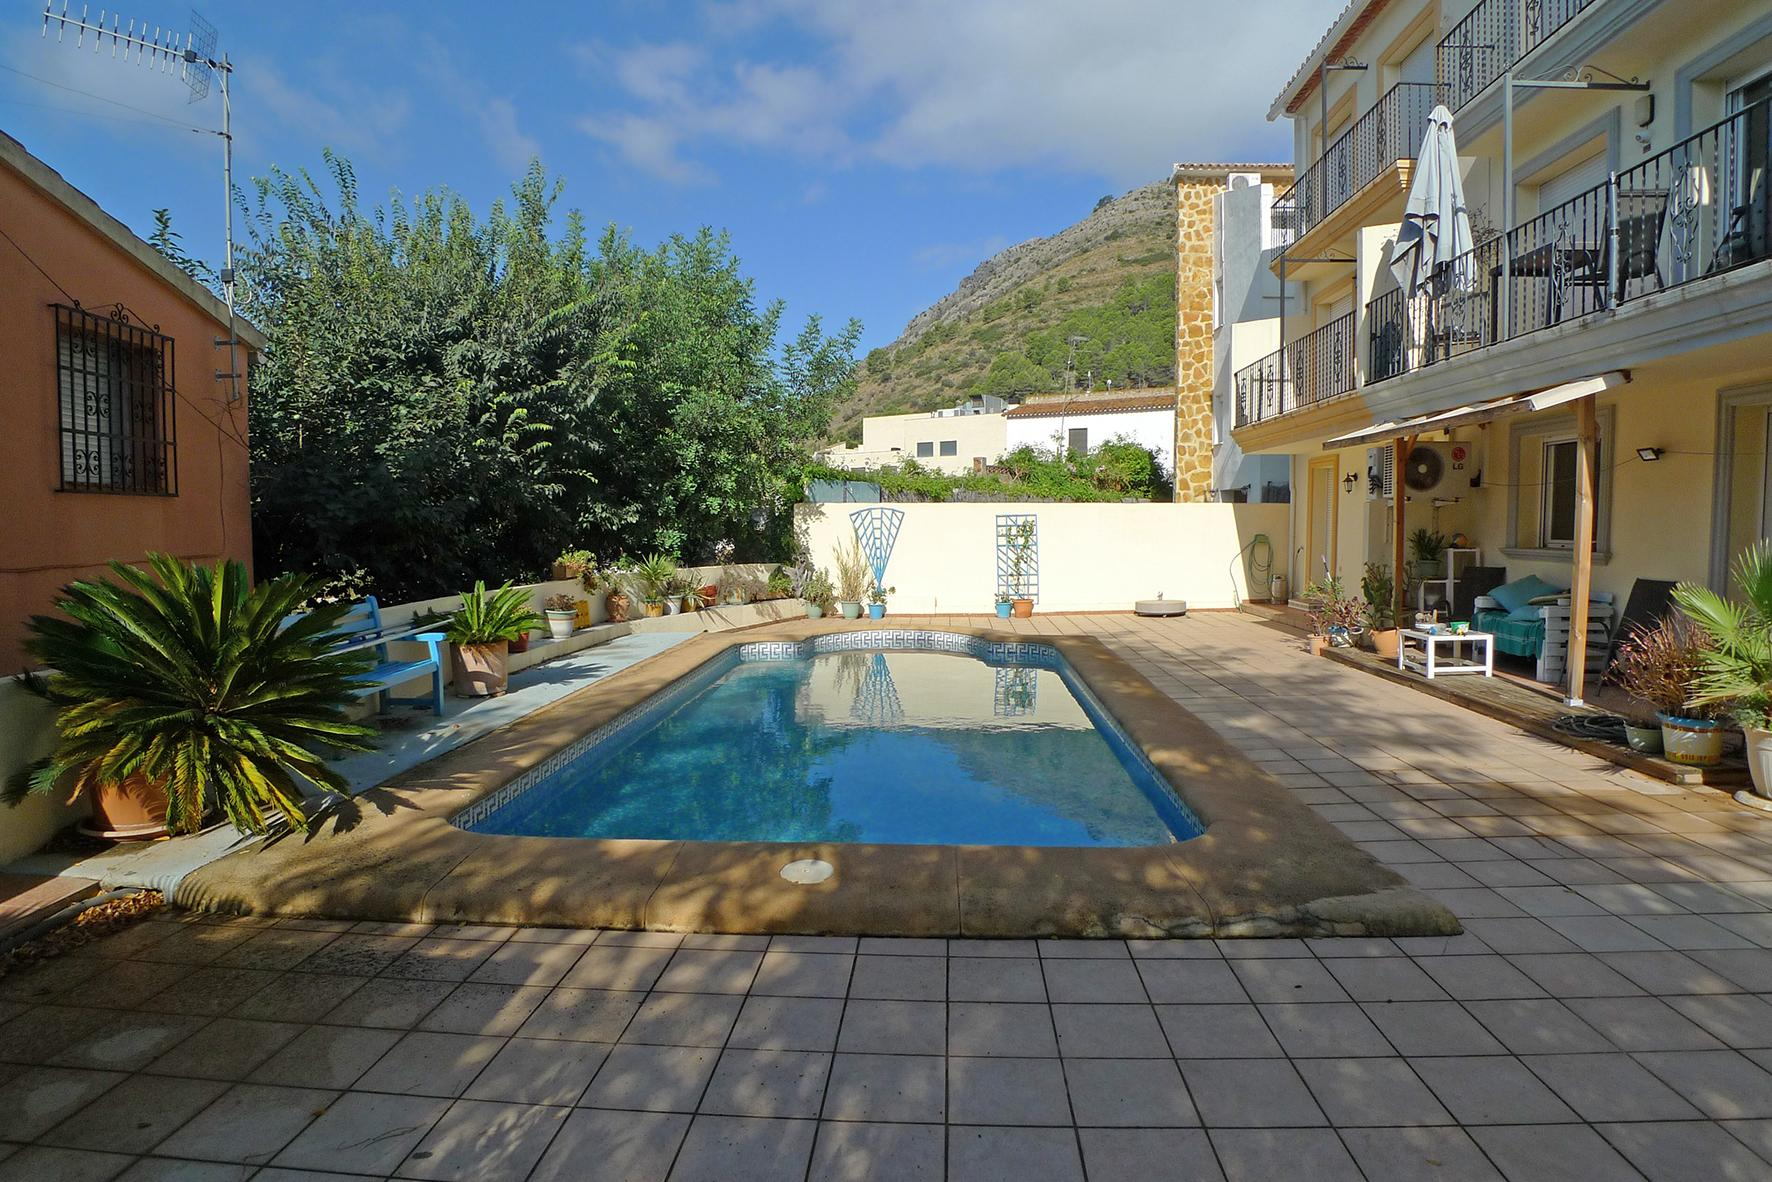 3 Bedroom Town house in Jalon